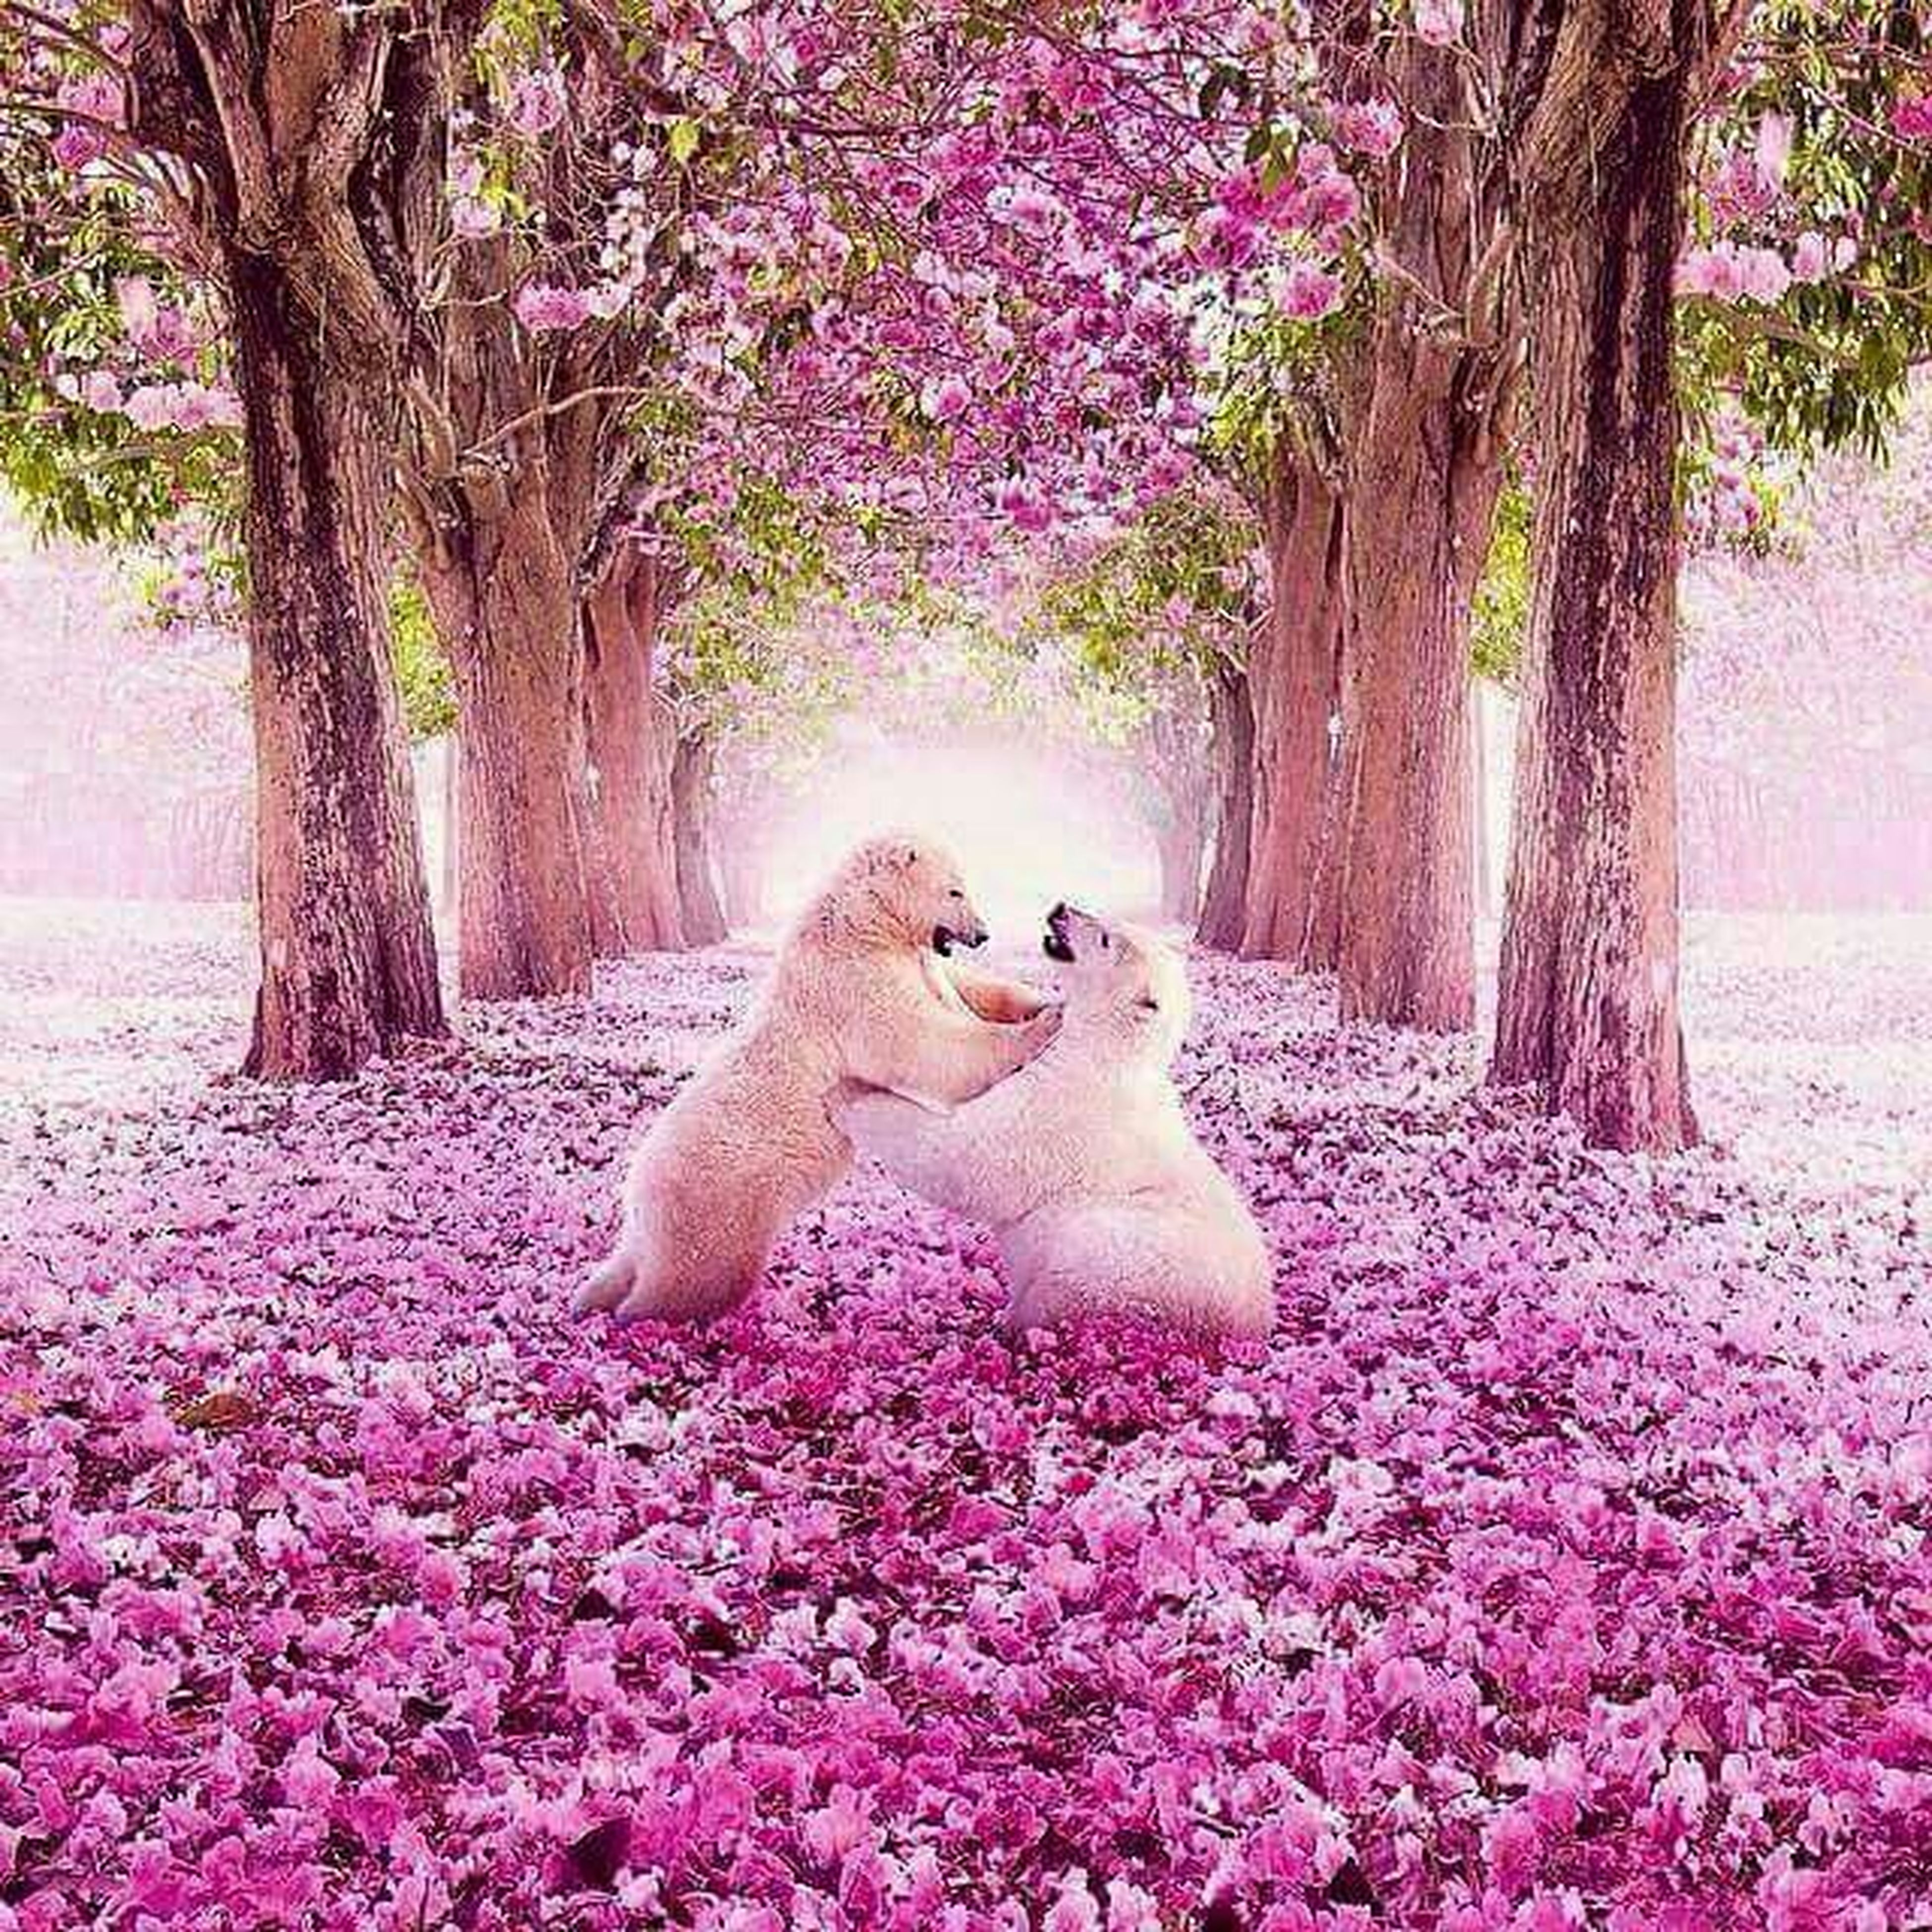 animal themes, one animal, flower, animals in the wild, tree, wildlife, bird, beauty in nature, growth, nature, full length, sunlight, park - man made space, plant, outdoors, day, pink color, side view, fragility, no people